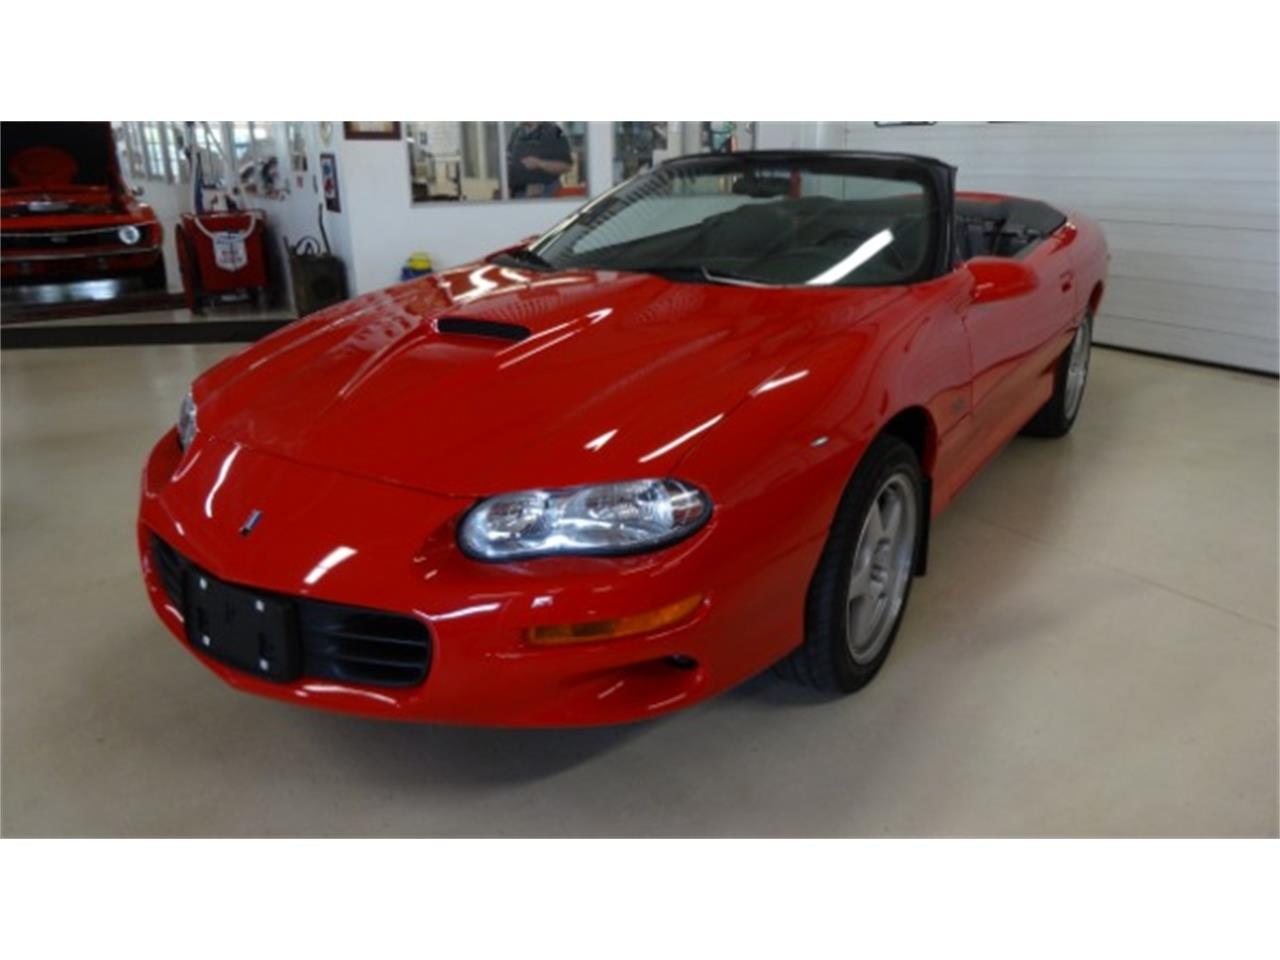 Large Picture of 1999 Chevrolet Camaro - $19,995.00 - IHTC